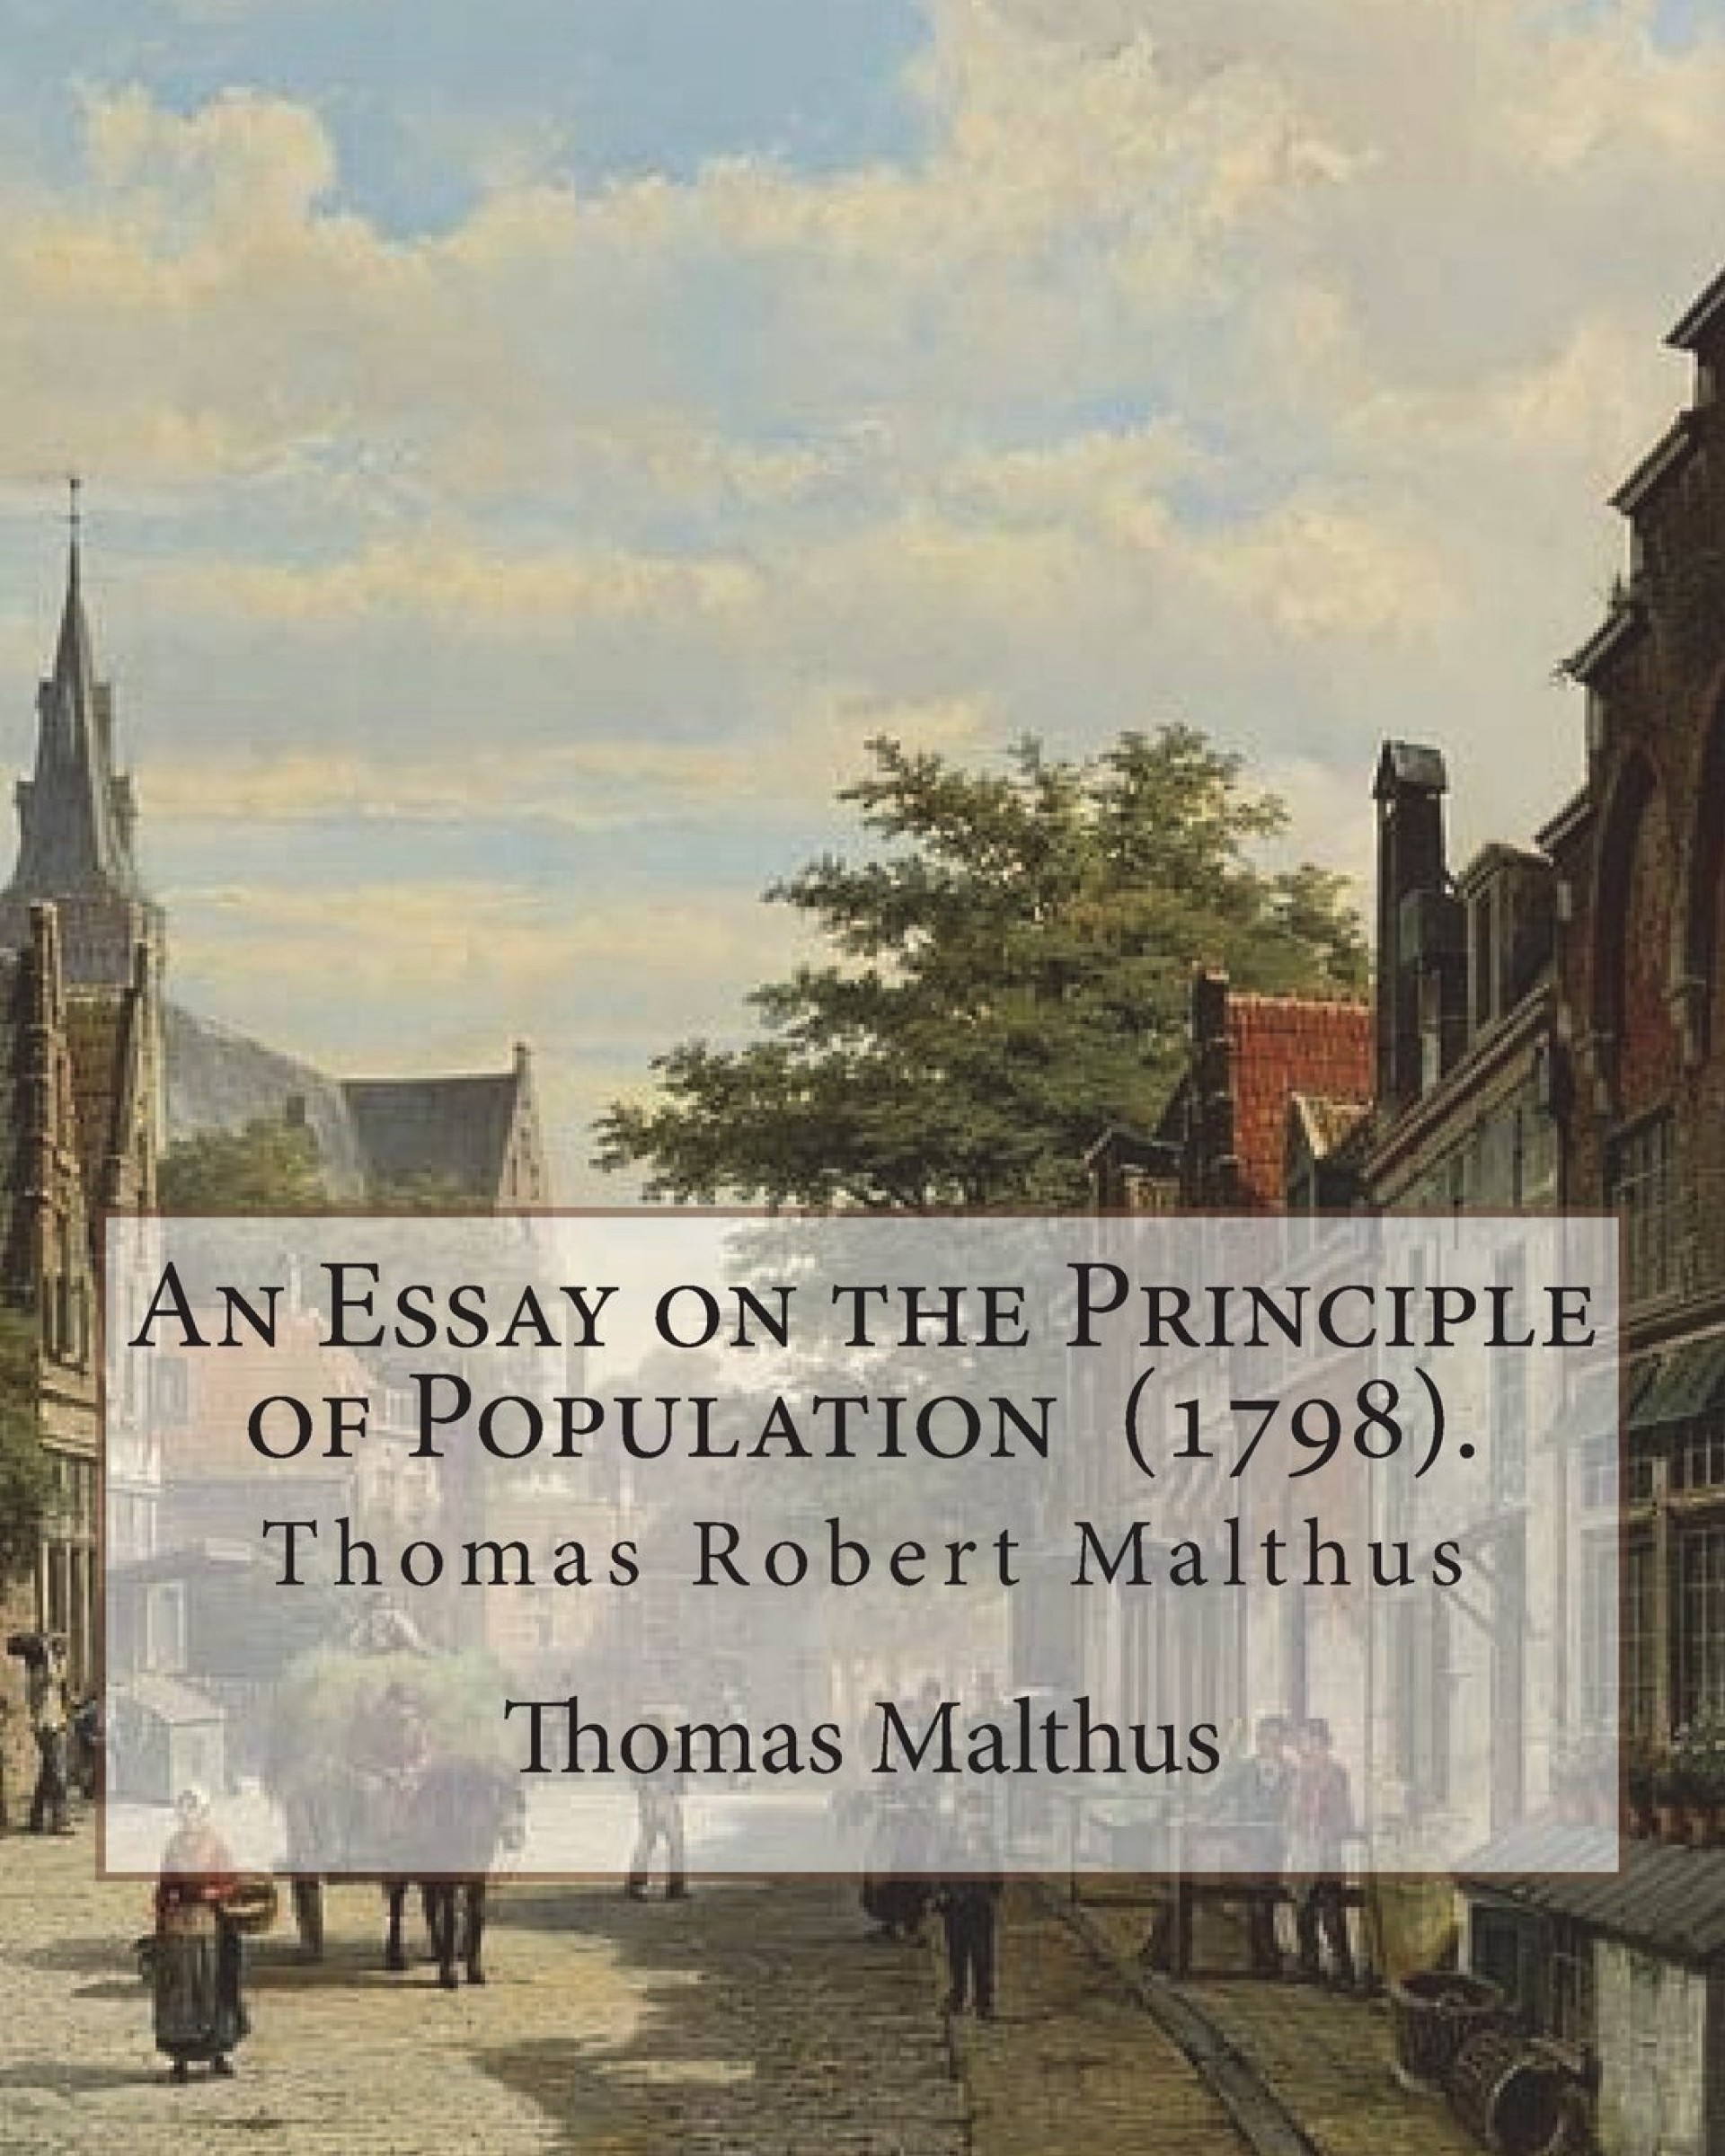 015 71giypnbhsl An Essay On The Principle Of Population Fascinating By Thomas Malthus Pdf In Concluded Which Following 1920